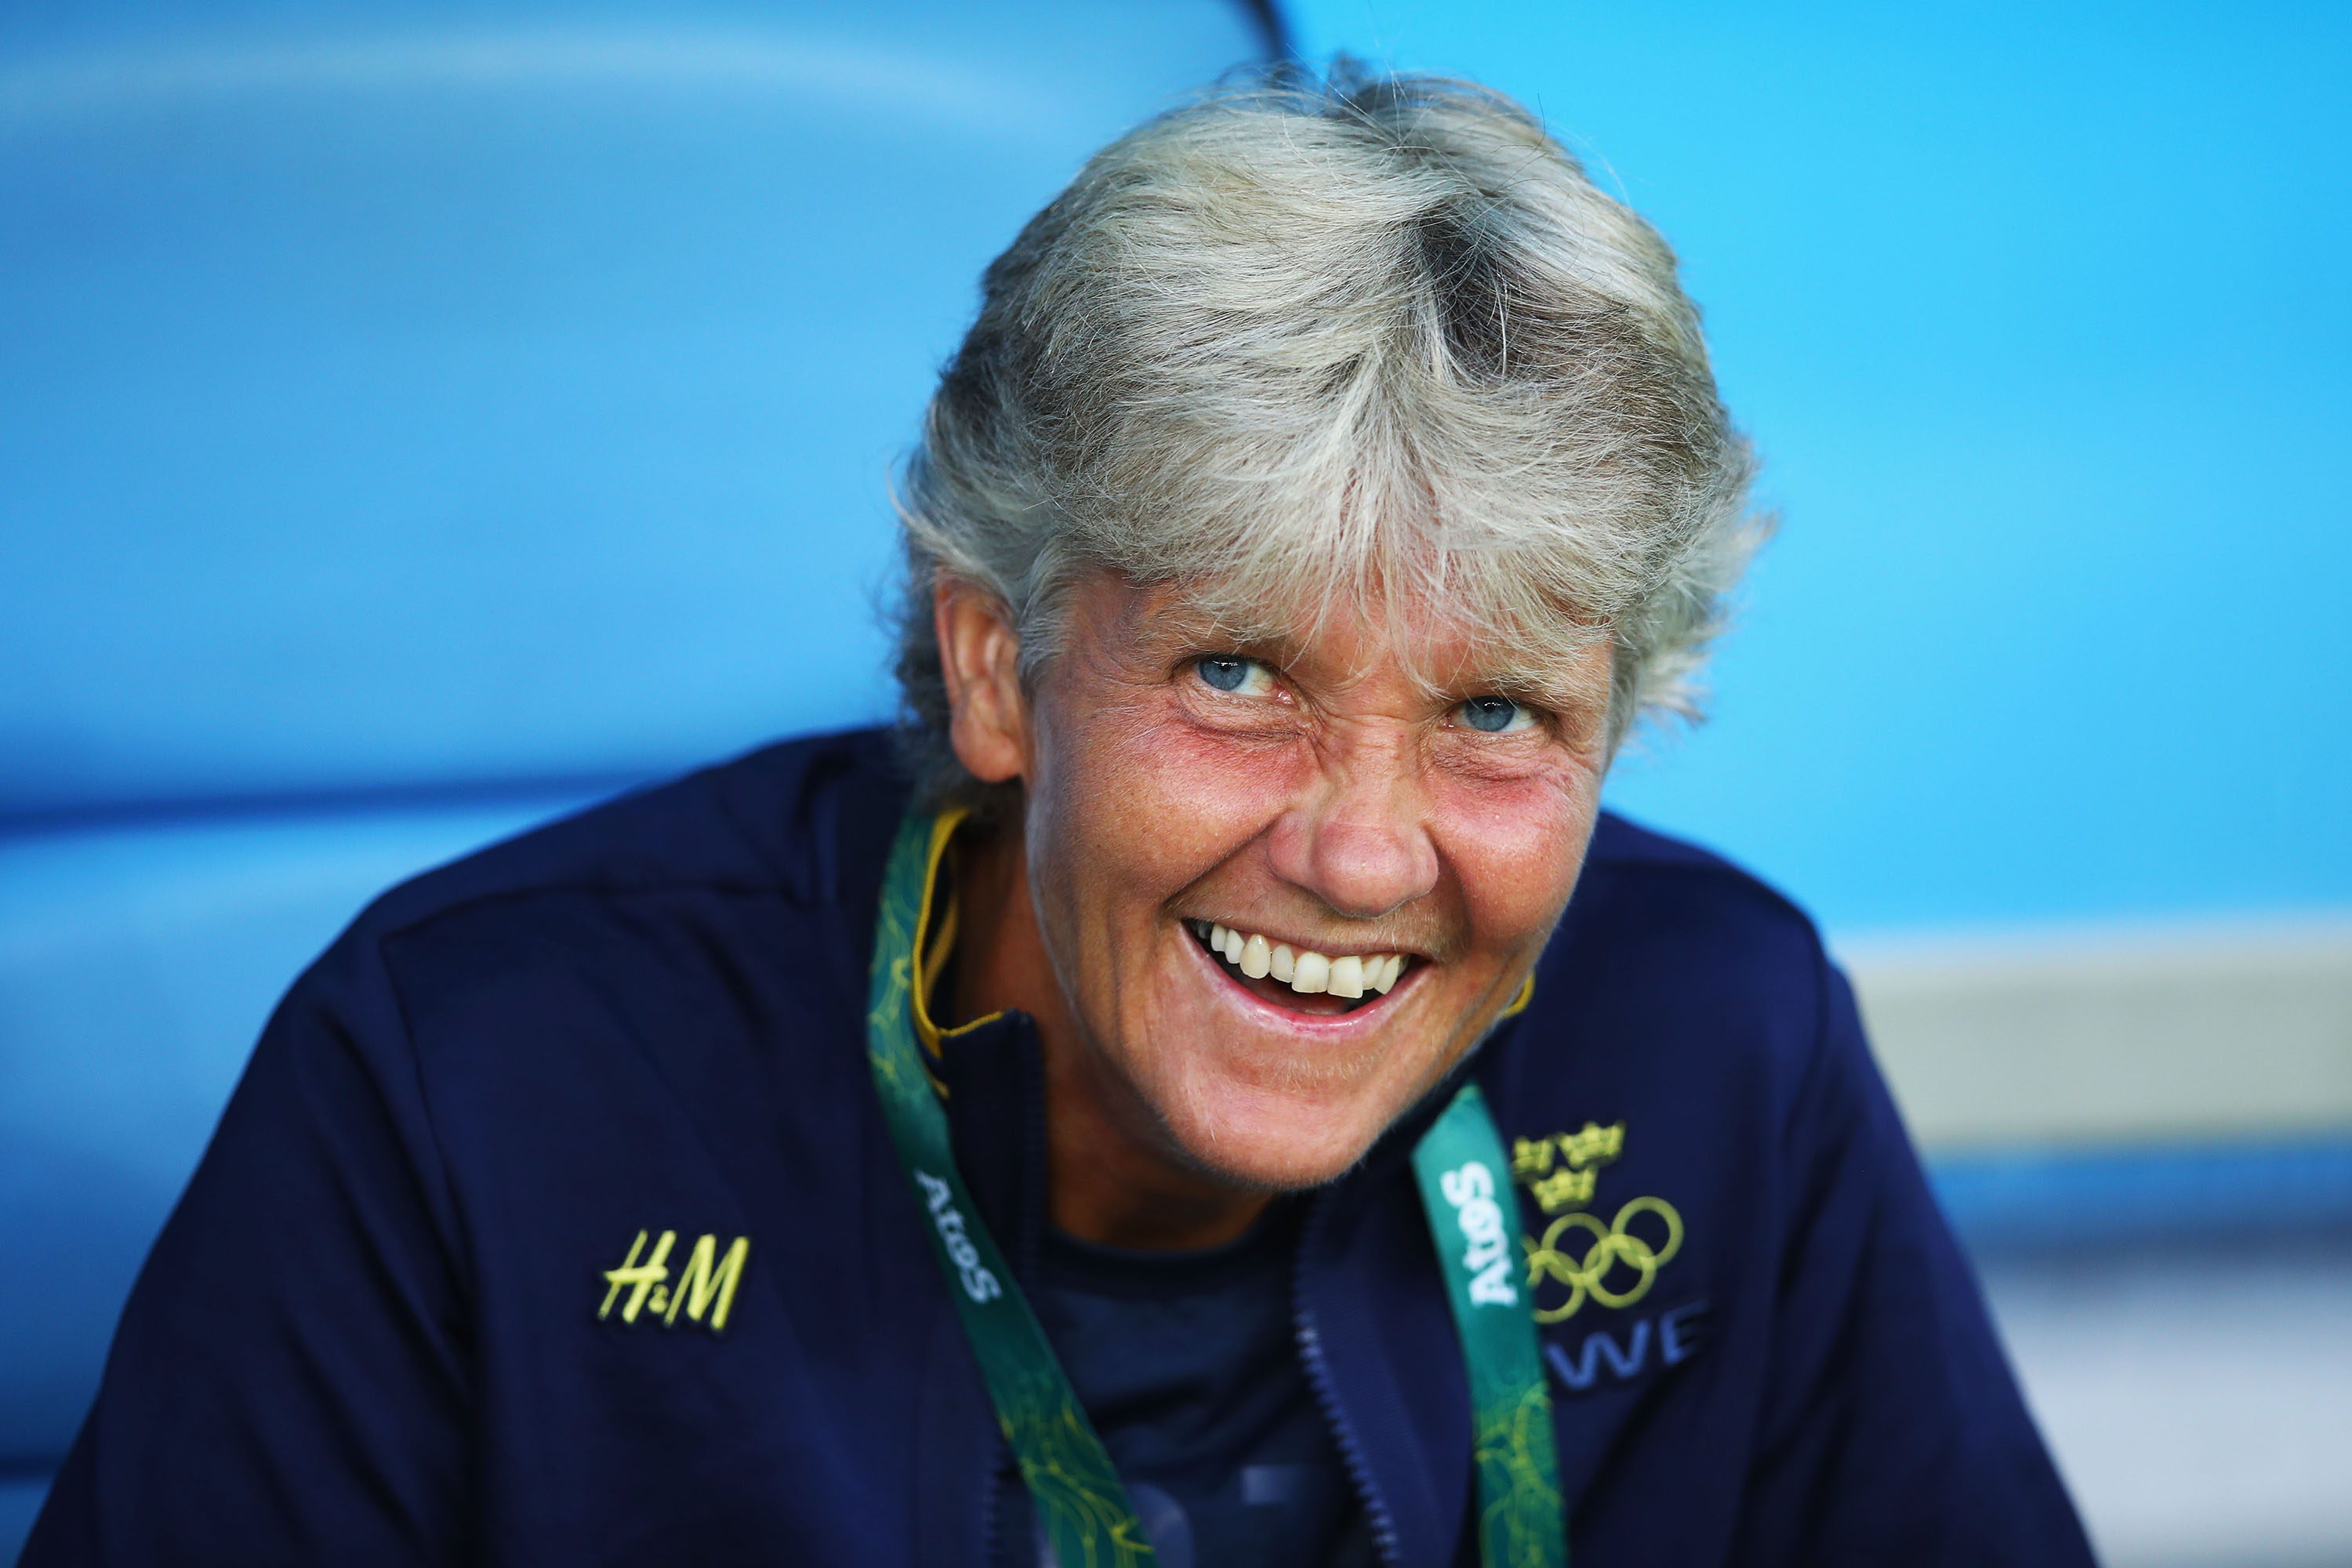 """Sweden manager Pia Sundhage was in the news this summer primarily because of Hope Solo, who called Sundhage's side """"cowardly"""" after the U.S. was upset in the knockout stage of the Olympics. But Sundhage, who previously coached the USWNT, responded by leading an underdog Sweden team all the way to the gold medal match, where they lost narrowly to Germany. Sundhage did it by instructing her team to play defensively, absorbing pressure and counterattacking successfully to upset the U.S. and Brazil on their way to a silver medal. Not exactly cowardly."""